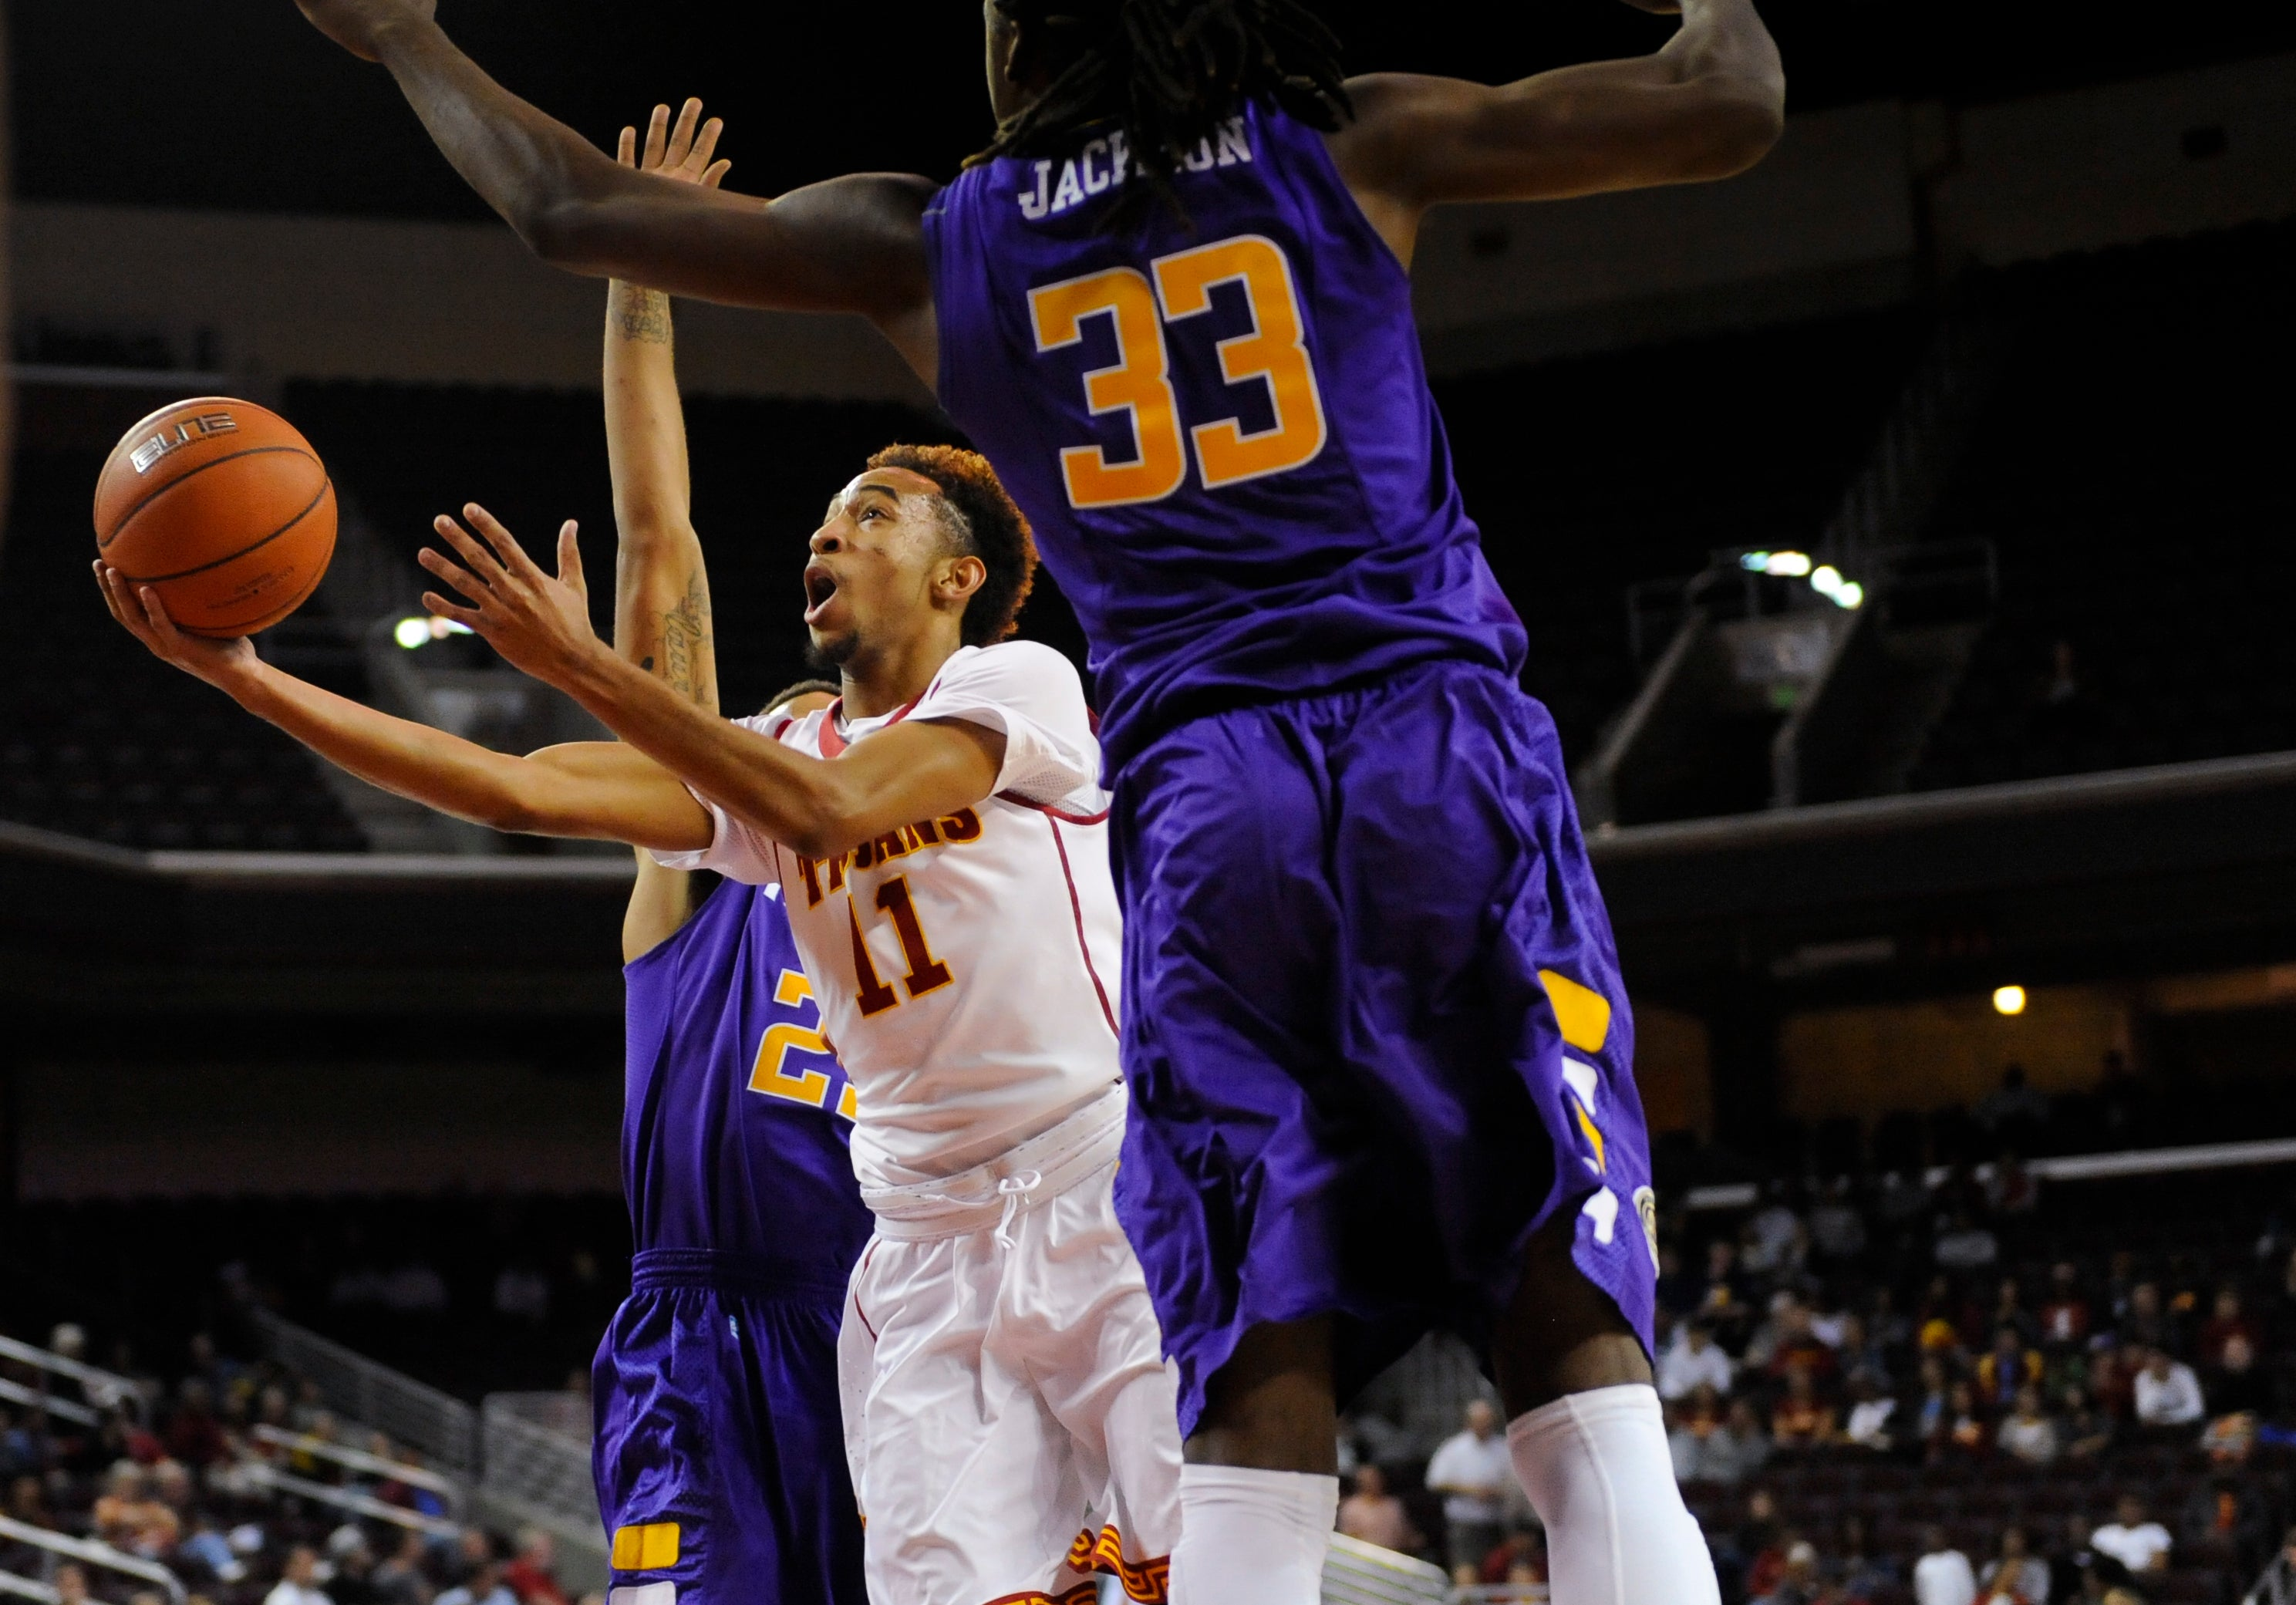 USC_M_Basketball_TennTech_111814_MCG3407.JPG